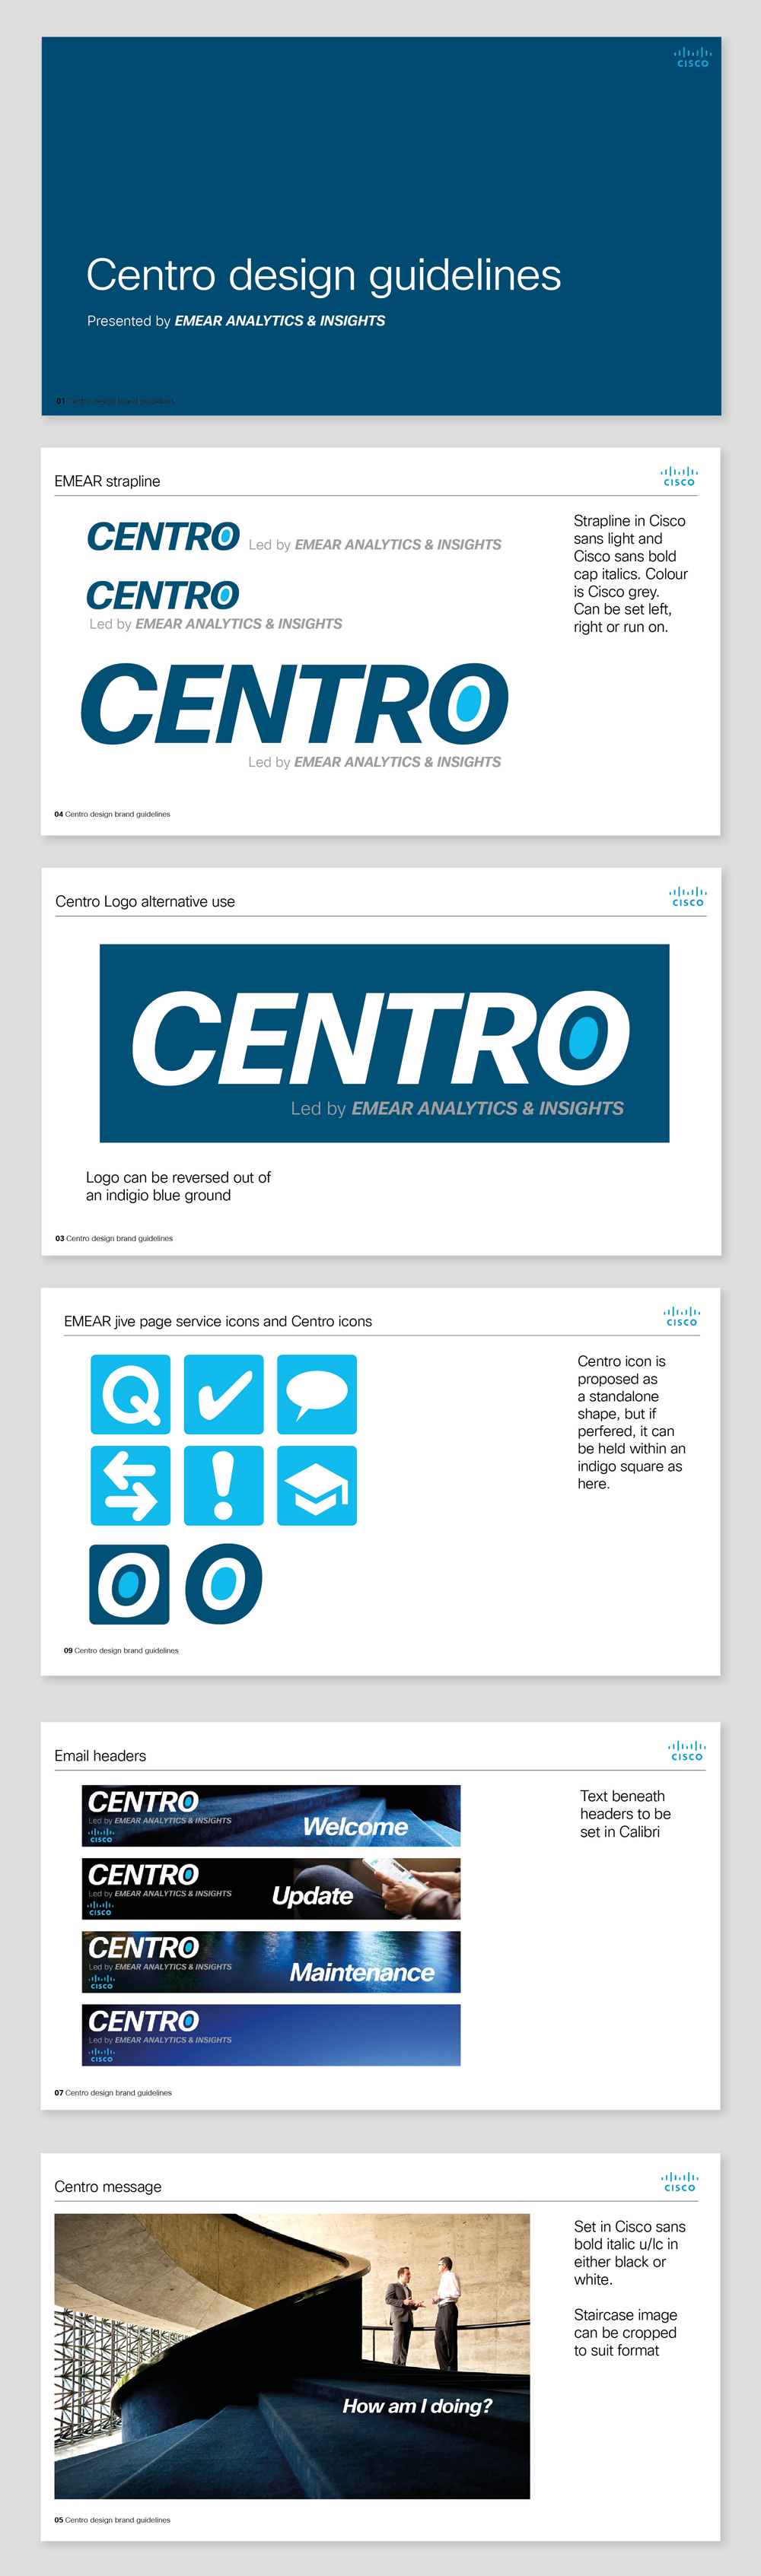 New branding, logo and style book for Centro, the sales data dashboard used throughout Cisco EMEAR